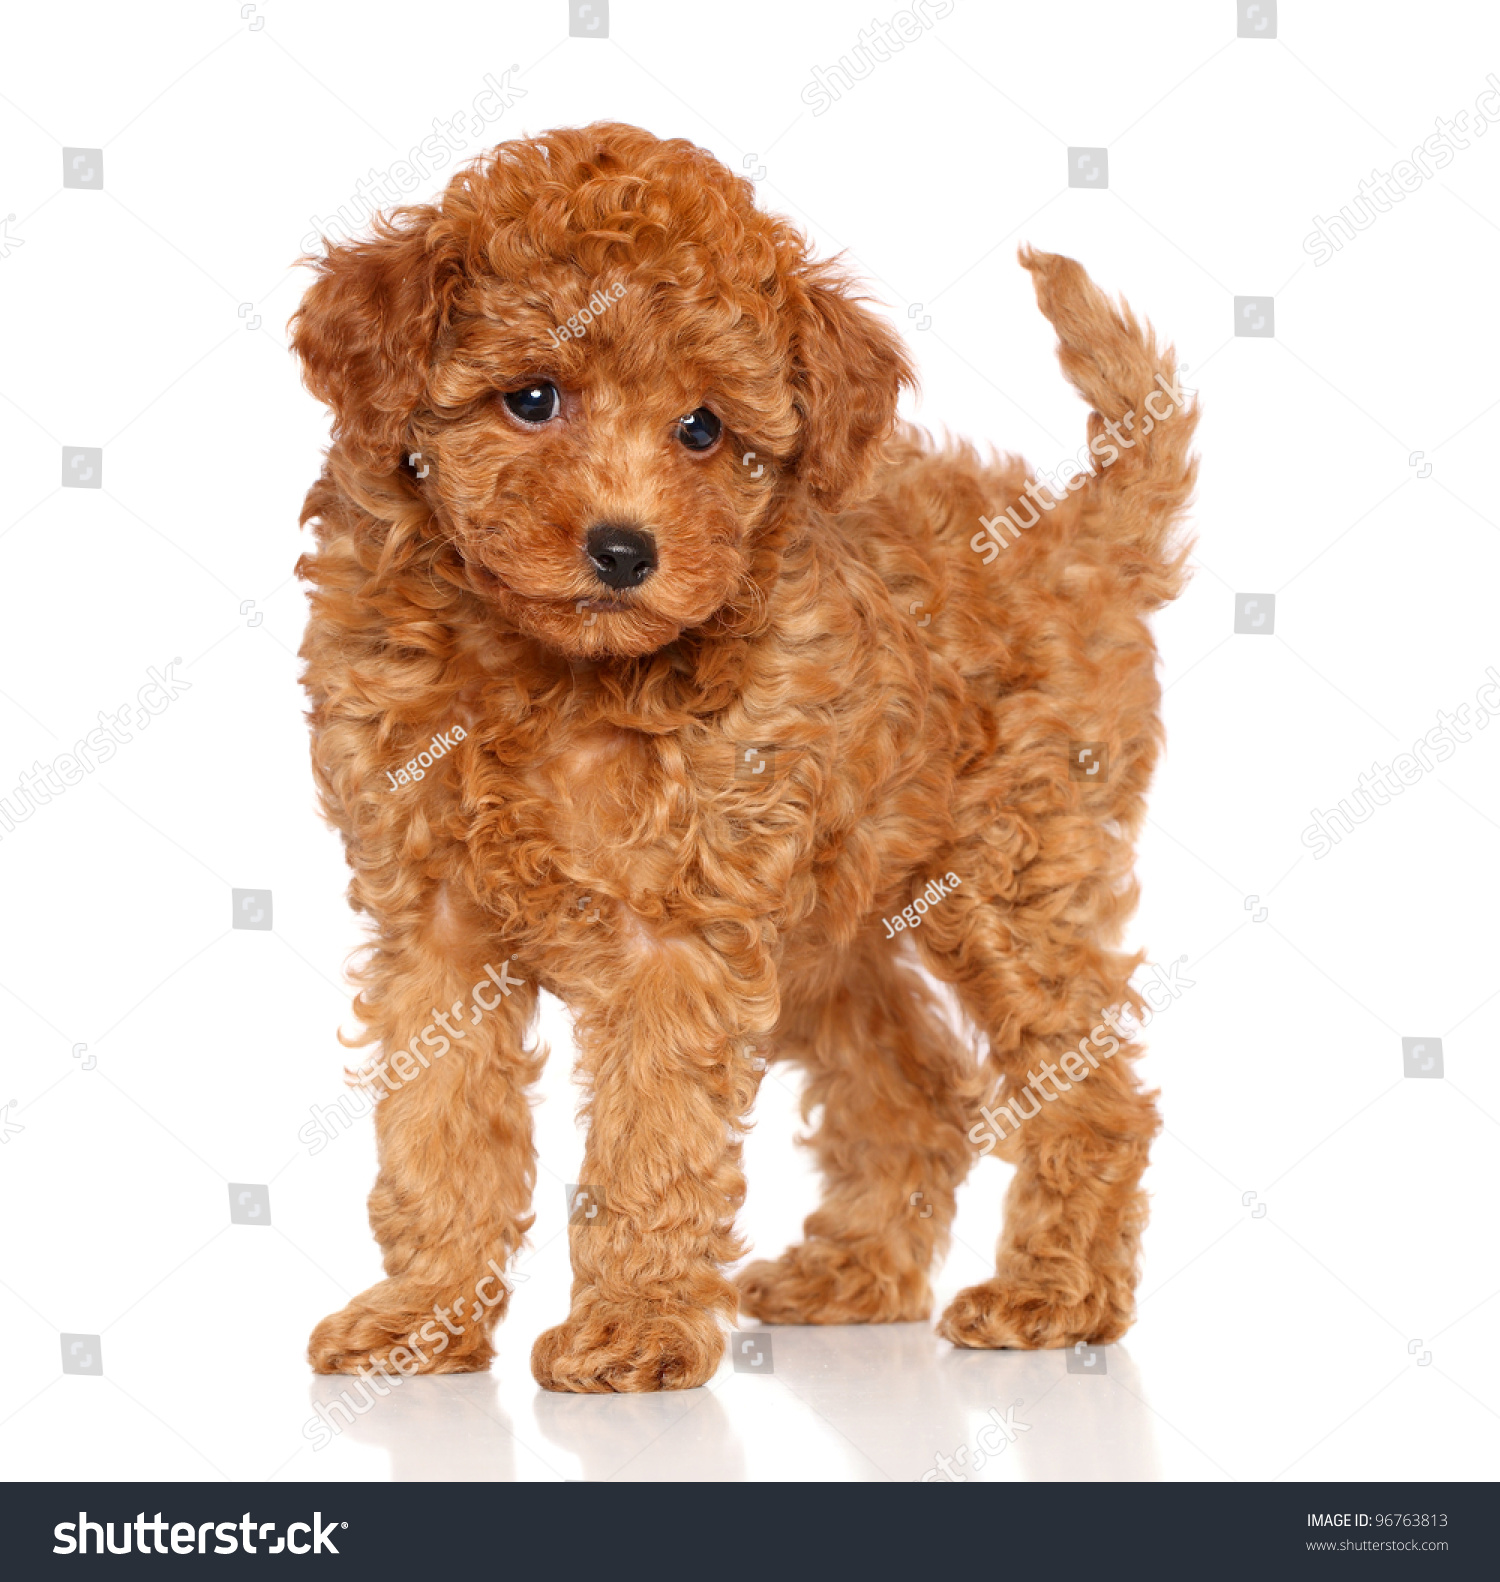 Red Toy Dogs : Red toy poodle puppy on white stock photo